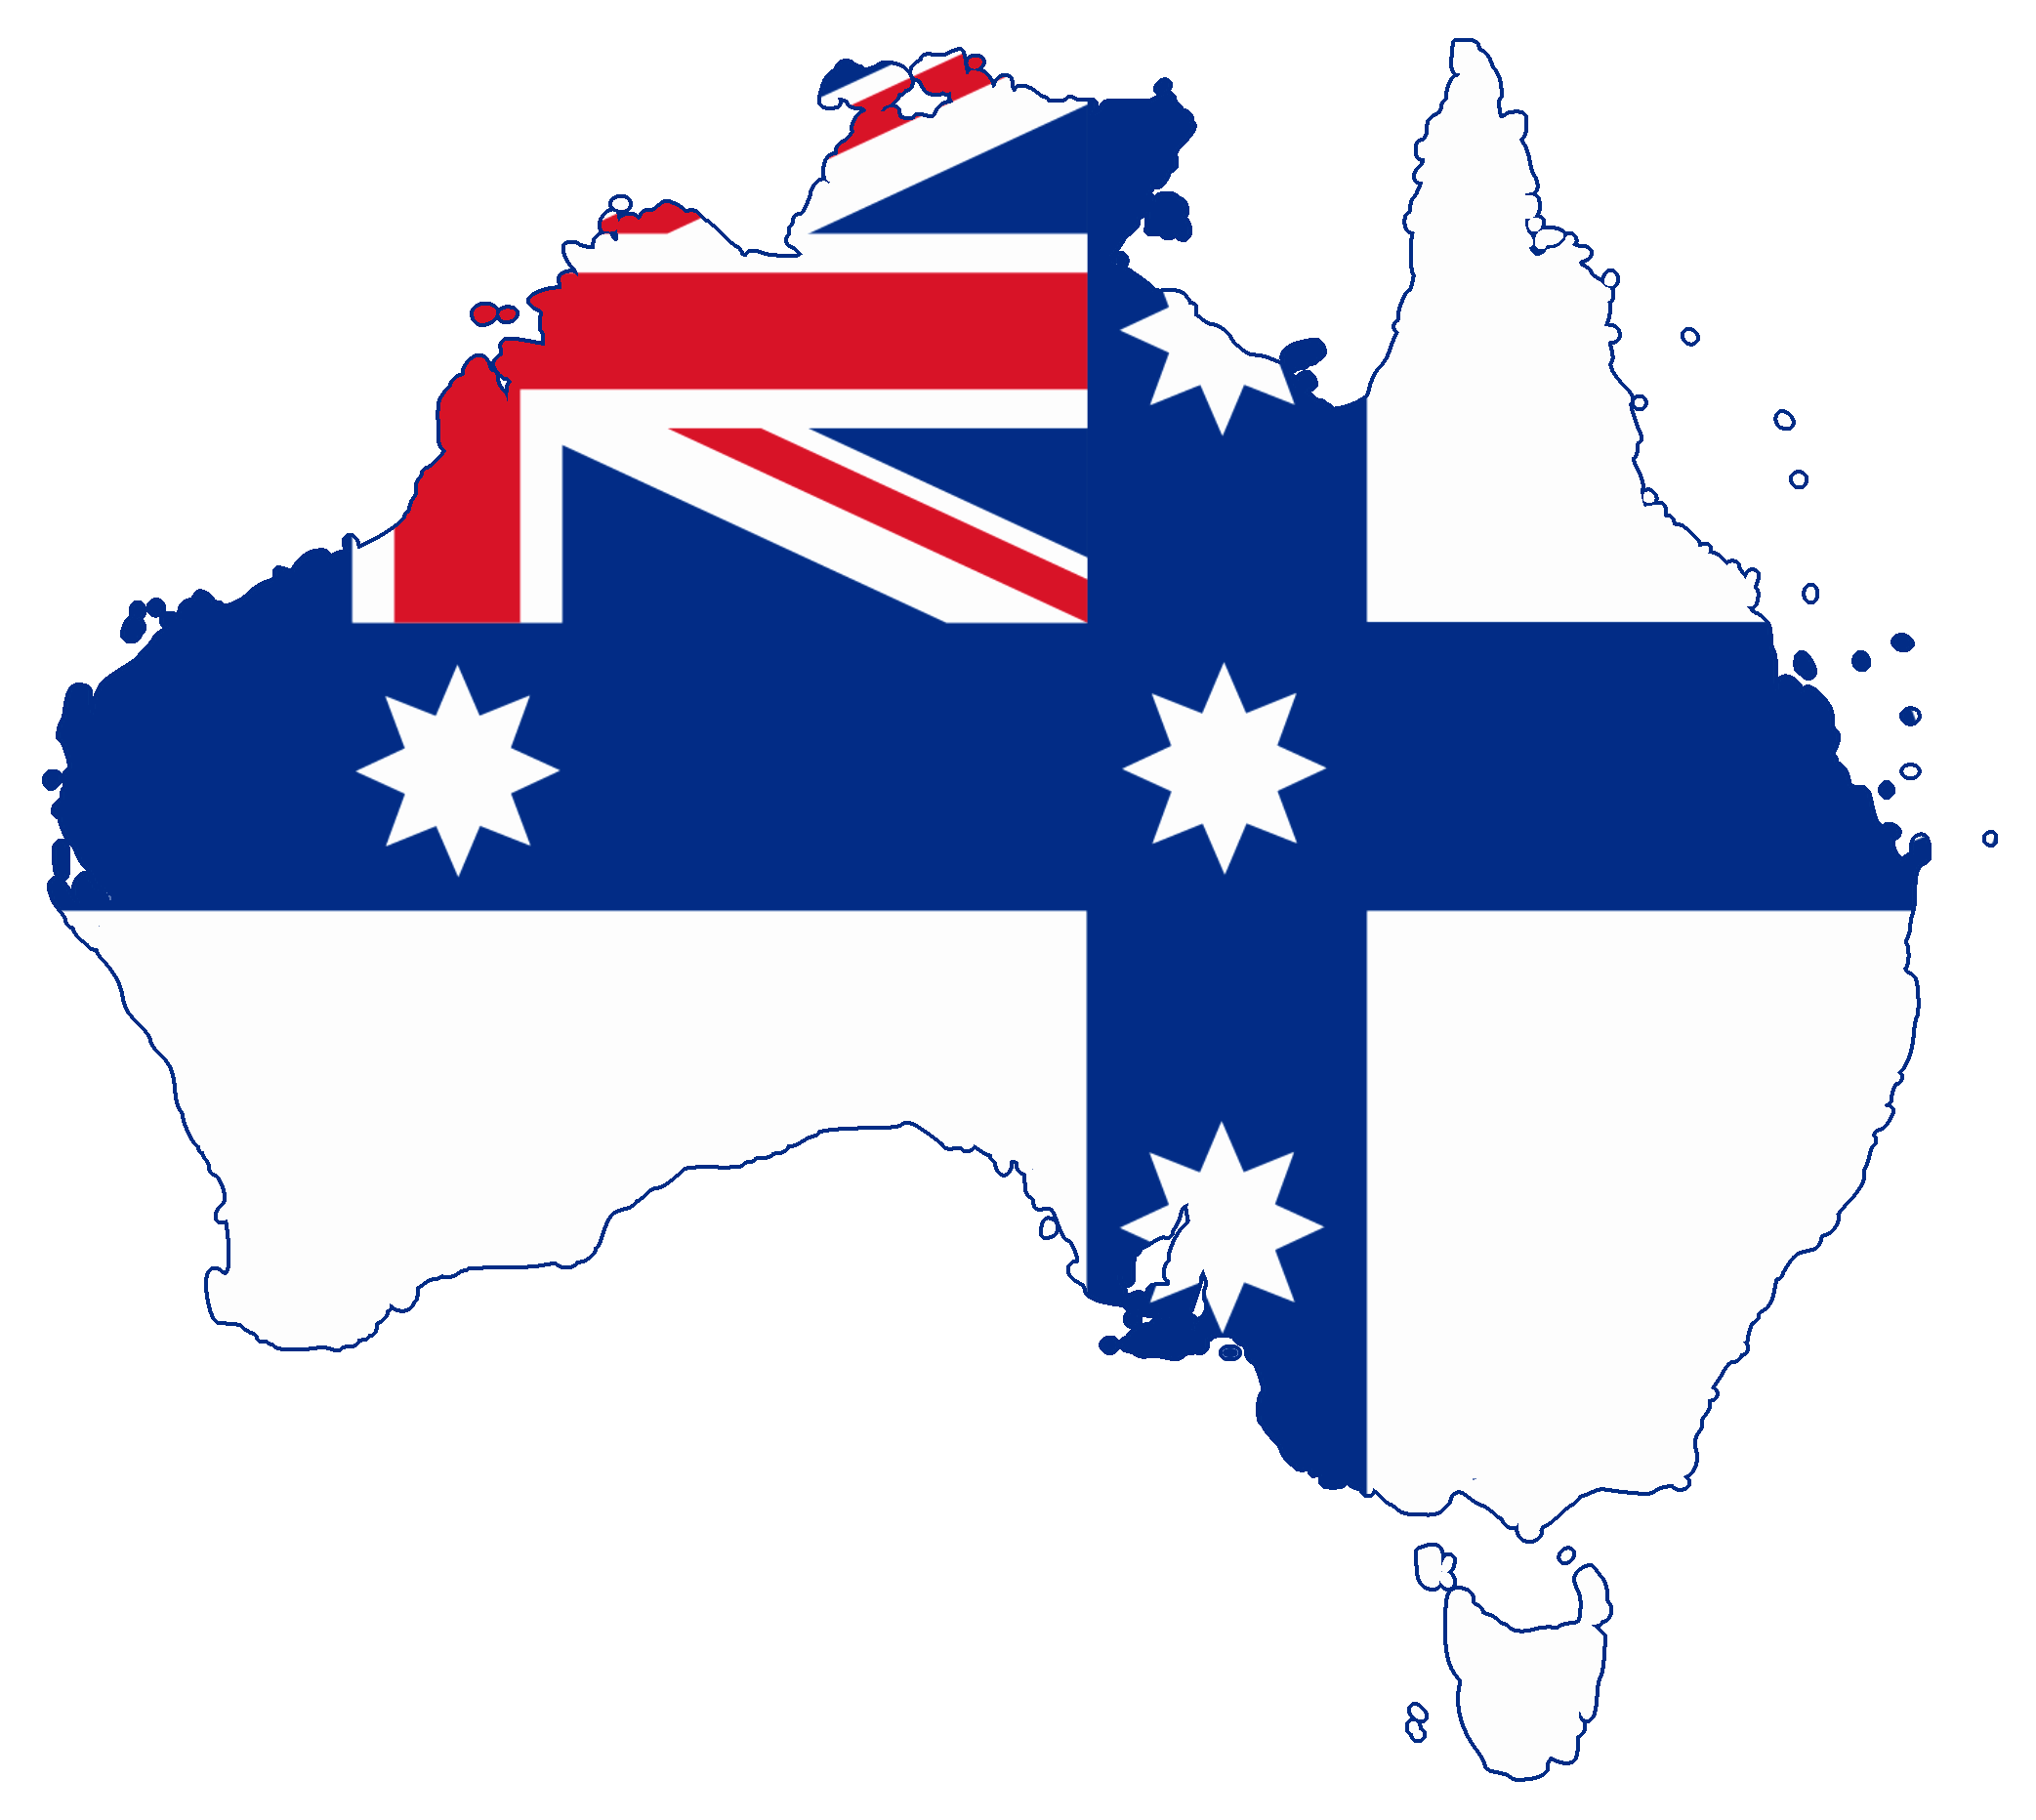 File:Flag map of Australia (Australian Federation).png - Australia PNG